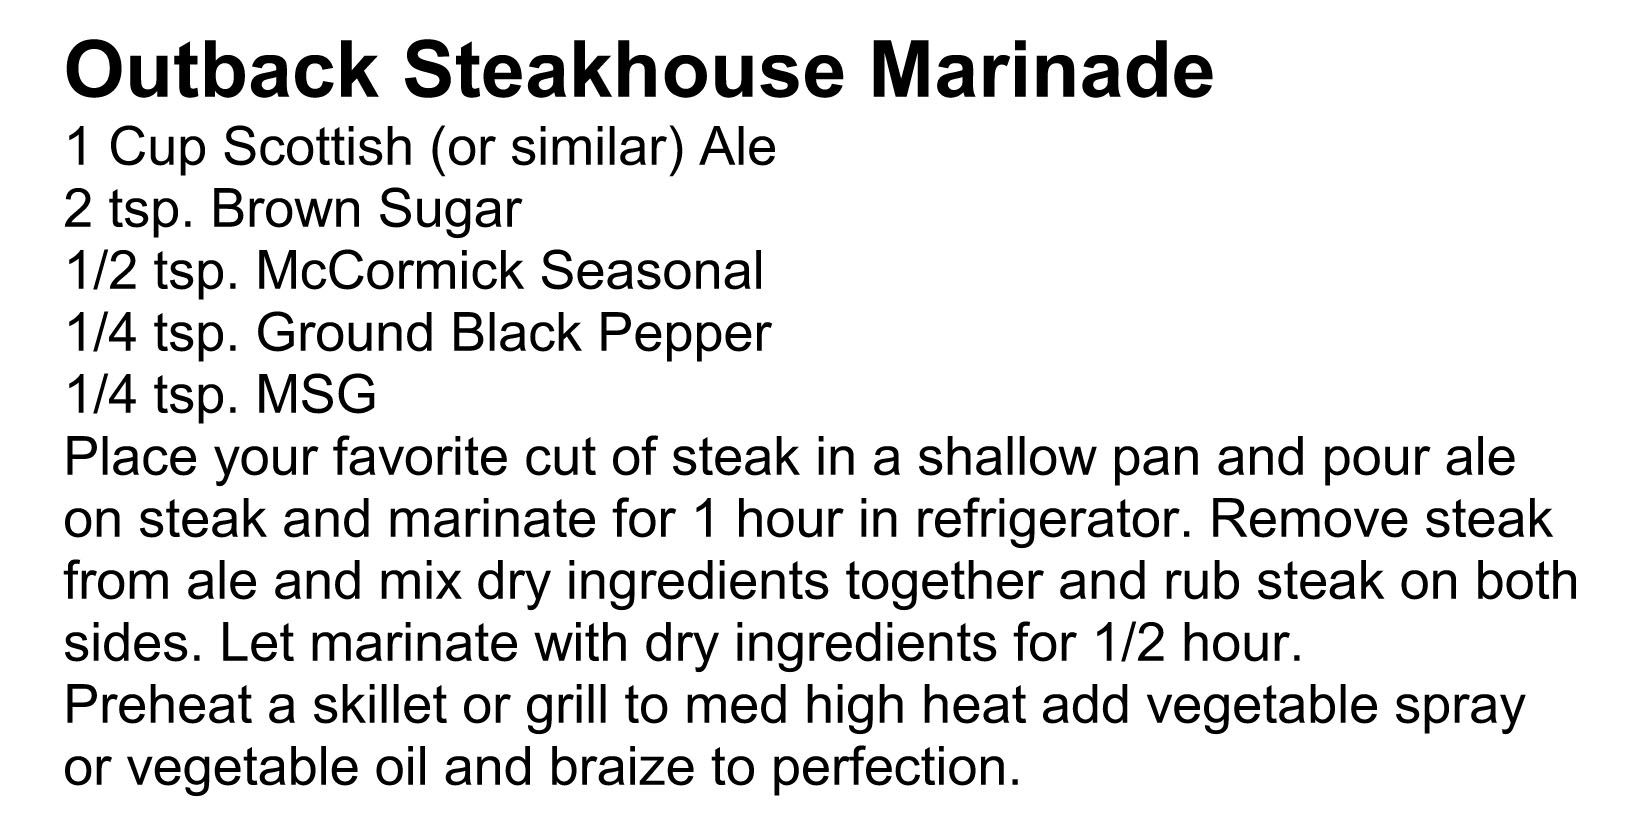 Outback Steakhouse Marinade | Awesome Recipies | Pinterest | Outback ...